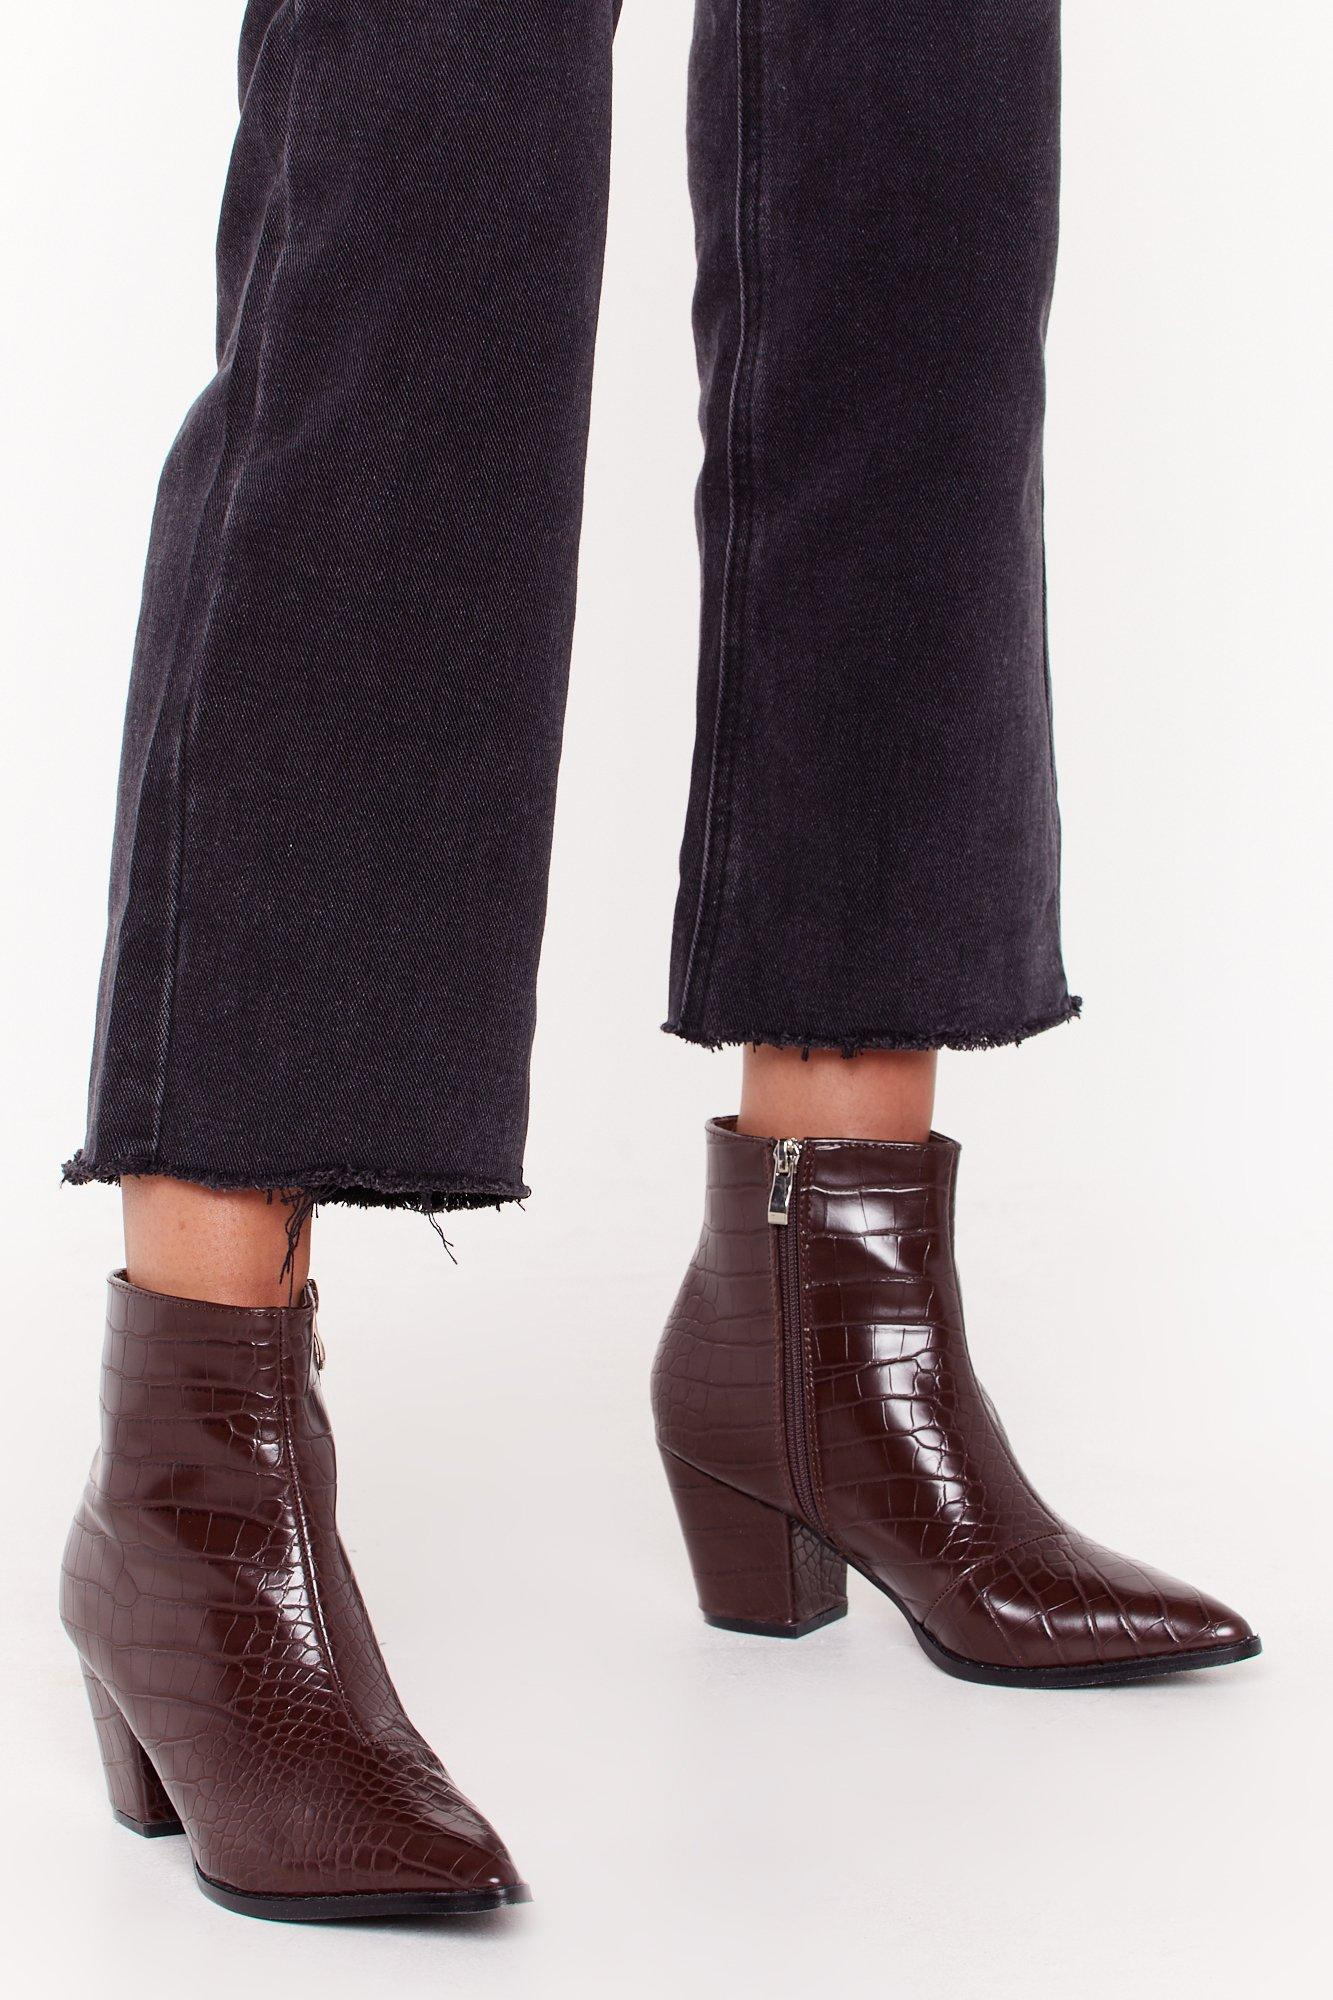 Pop Croc and Drop Faux Leather Block Heel Boots | Nasty Gal